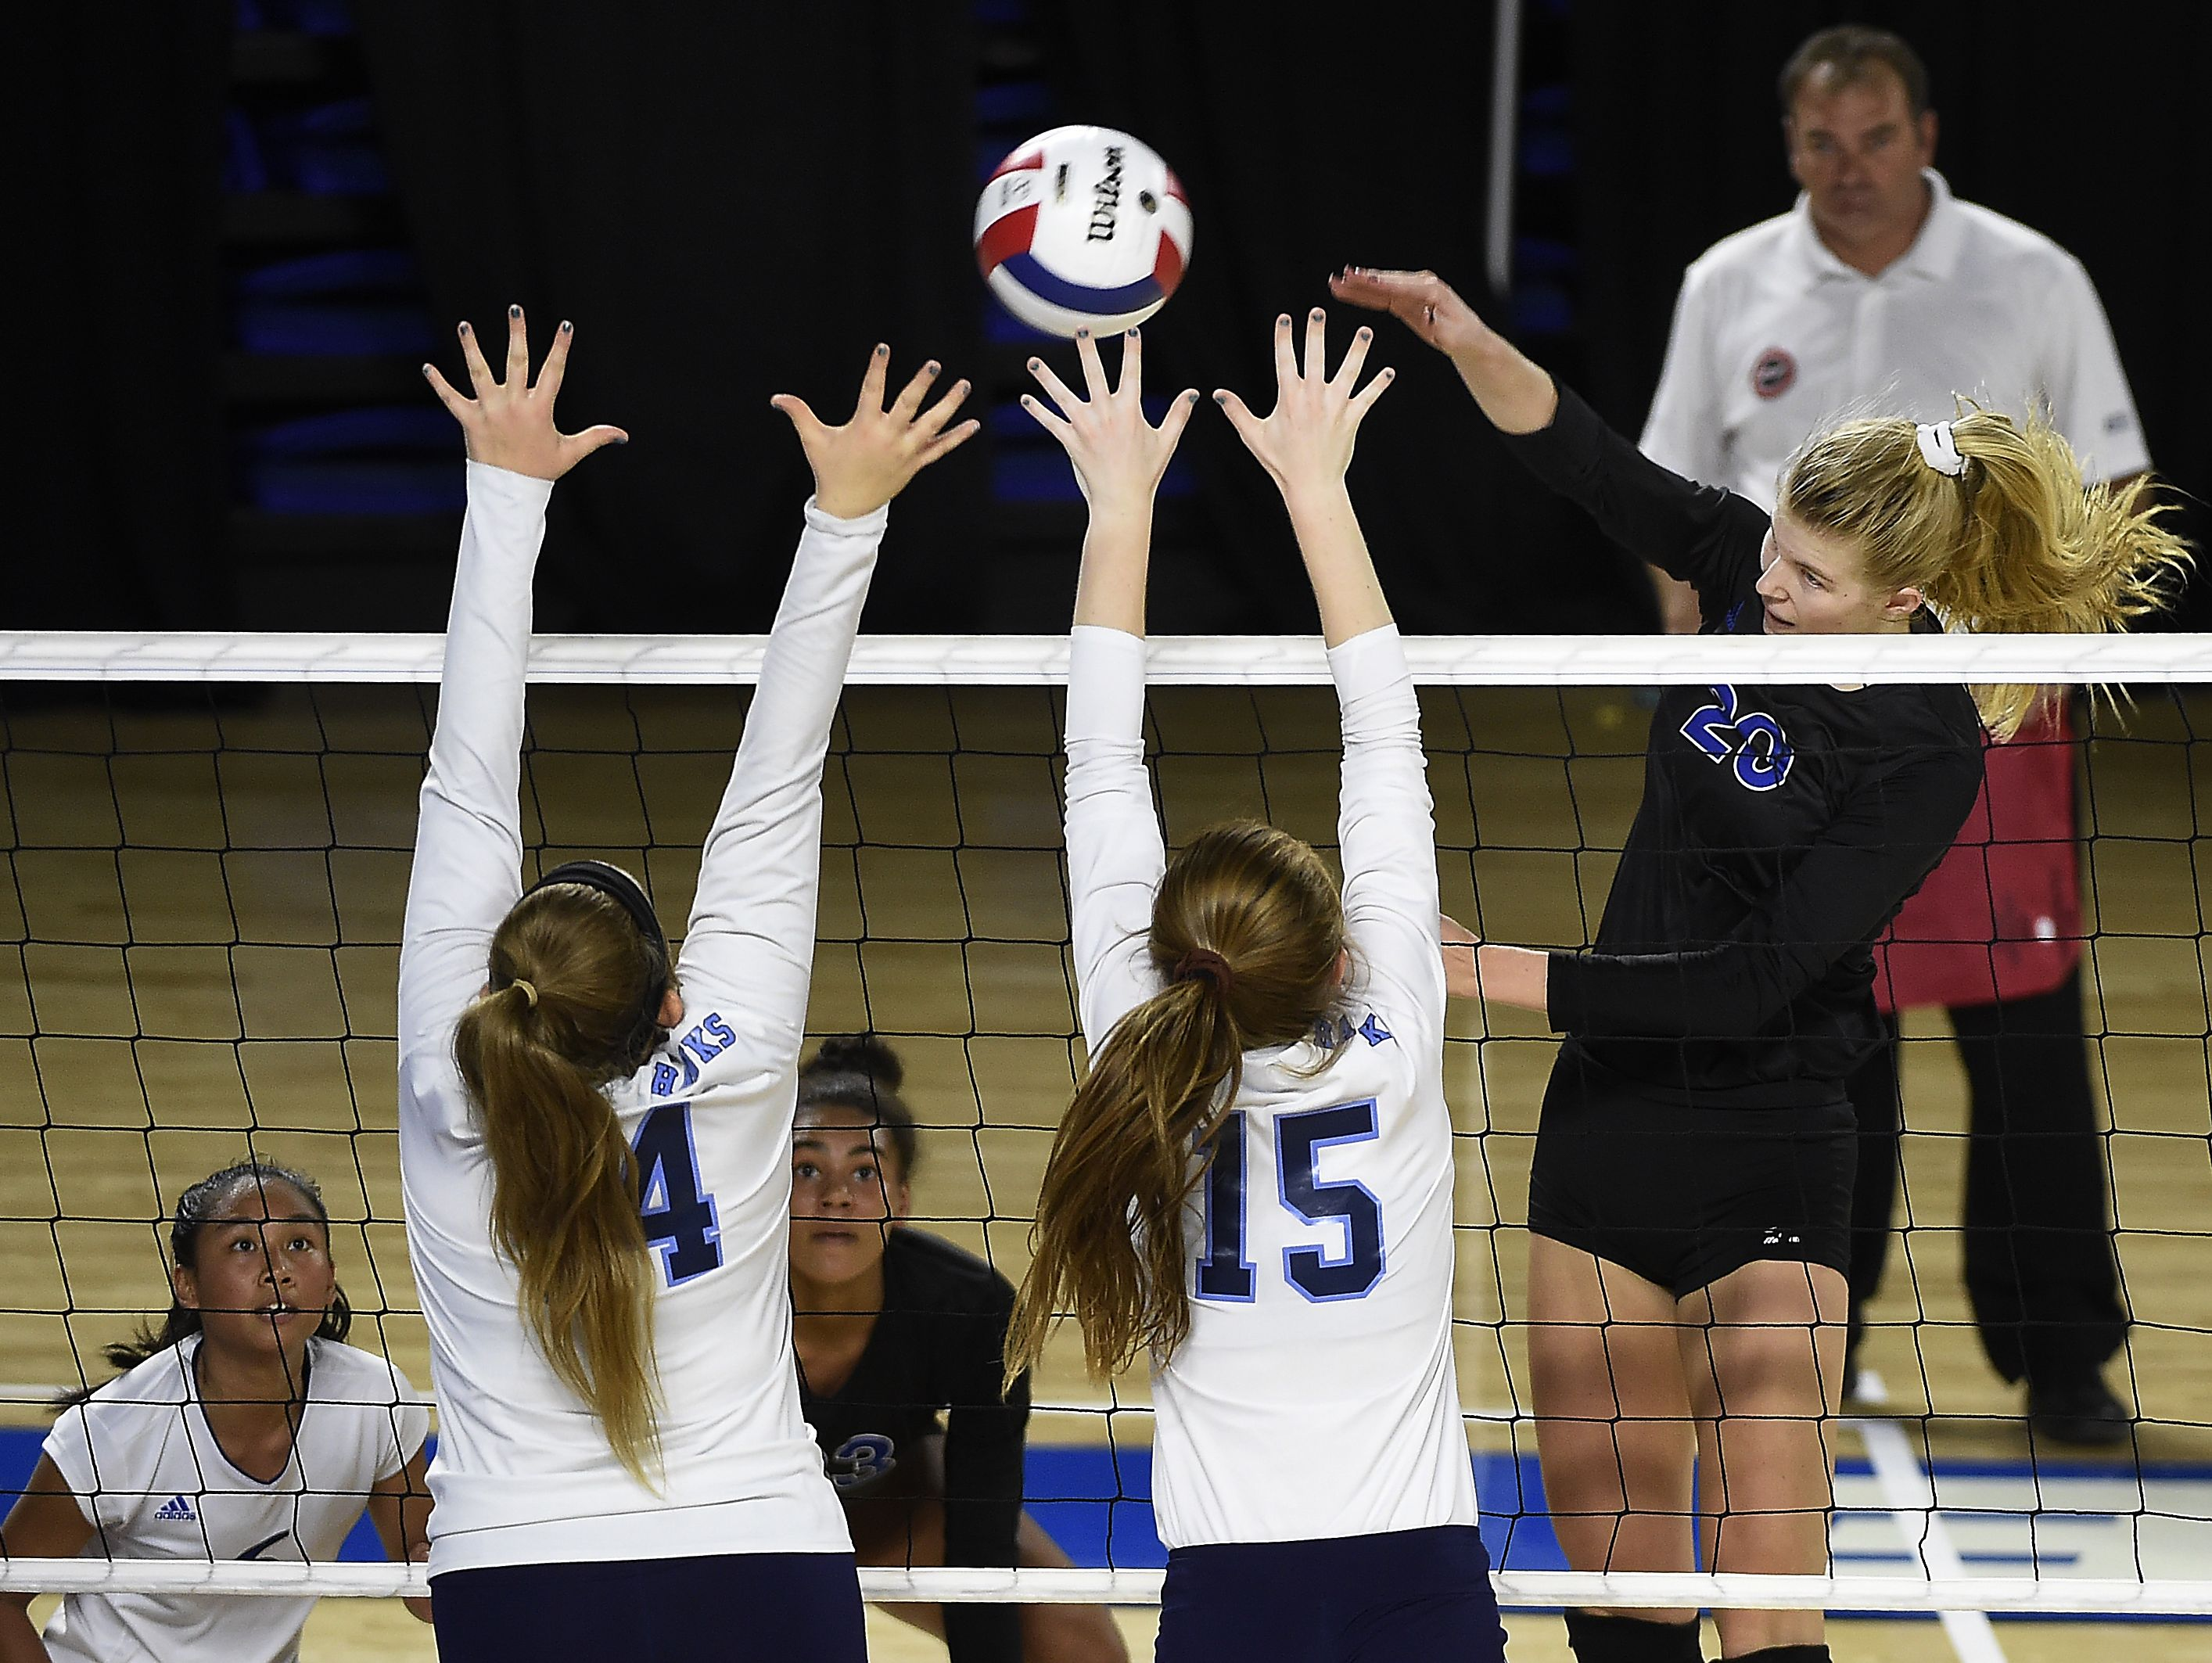 Brentwood's Garrett Joiner (20) spikes the ball as Brentwood plays Hardin Valley at MTSU's Murphy Center during the TSSAA volleyball state tournament. Thursday Oct. 20, 2016, in Murfreesboro, Tenn.